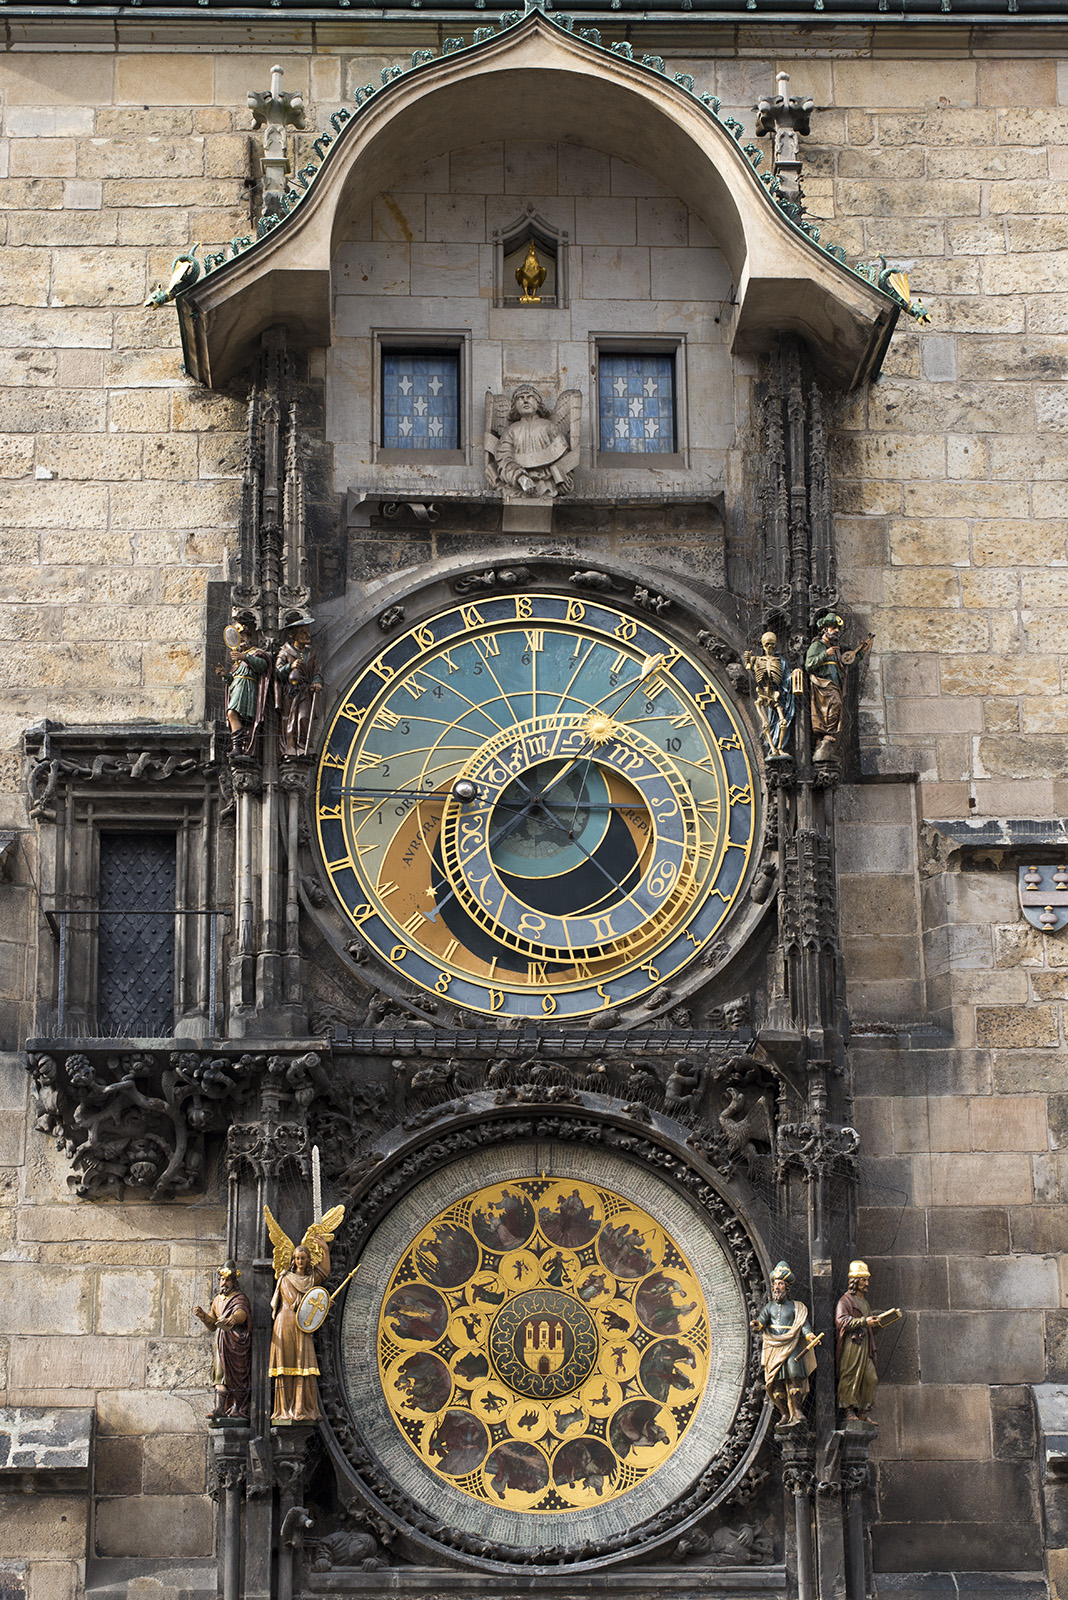 astrology clock prague